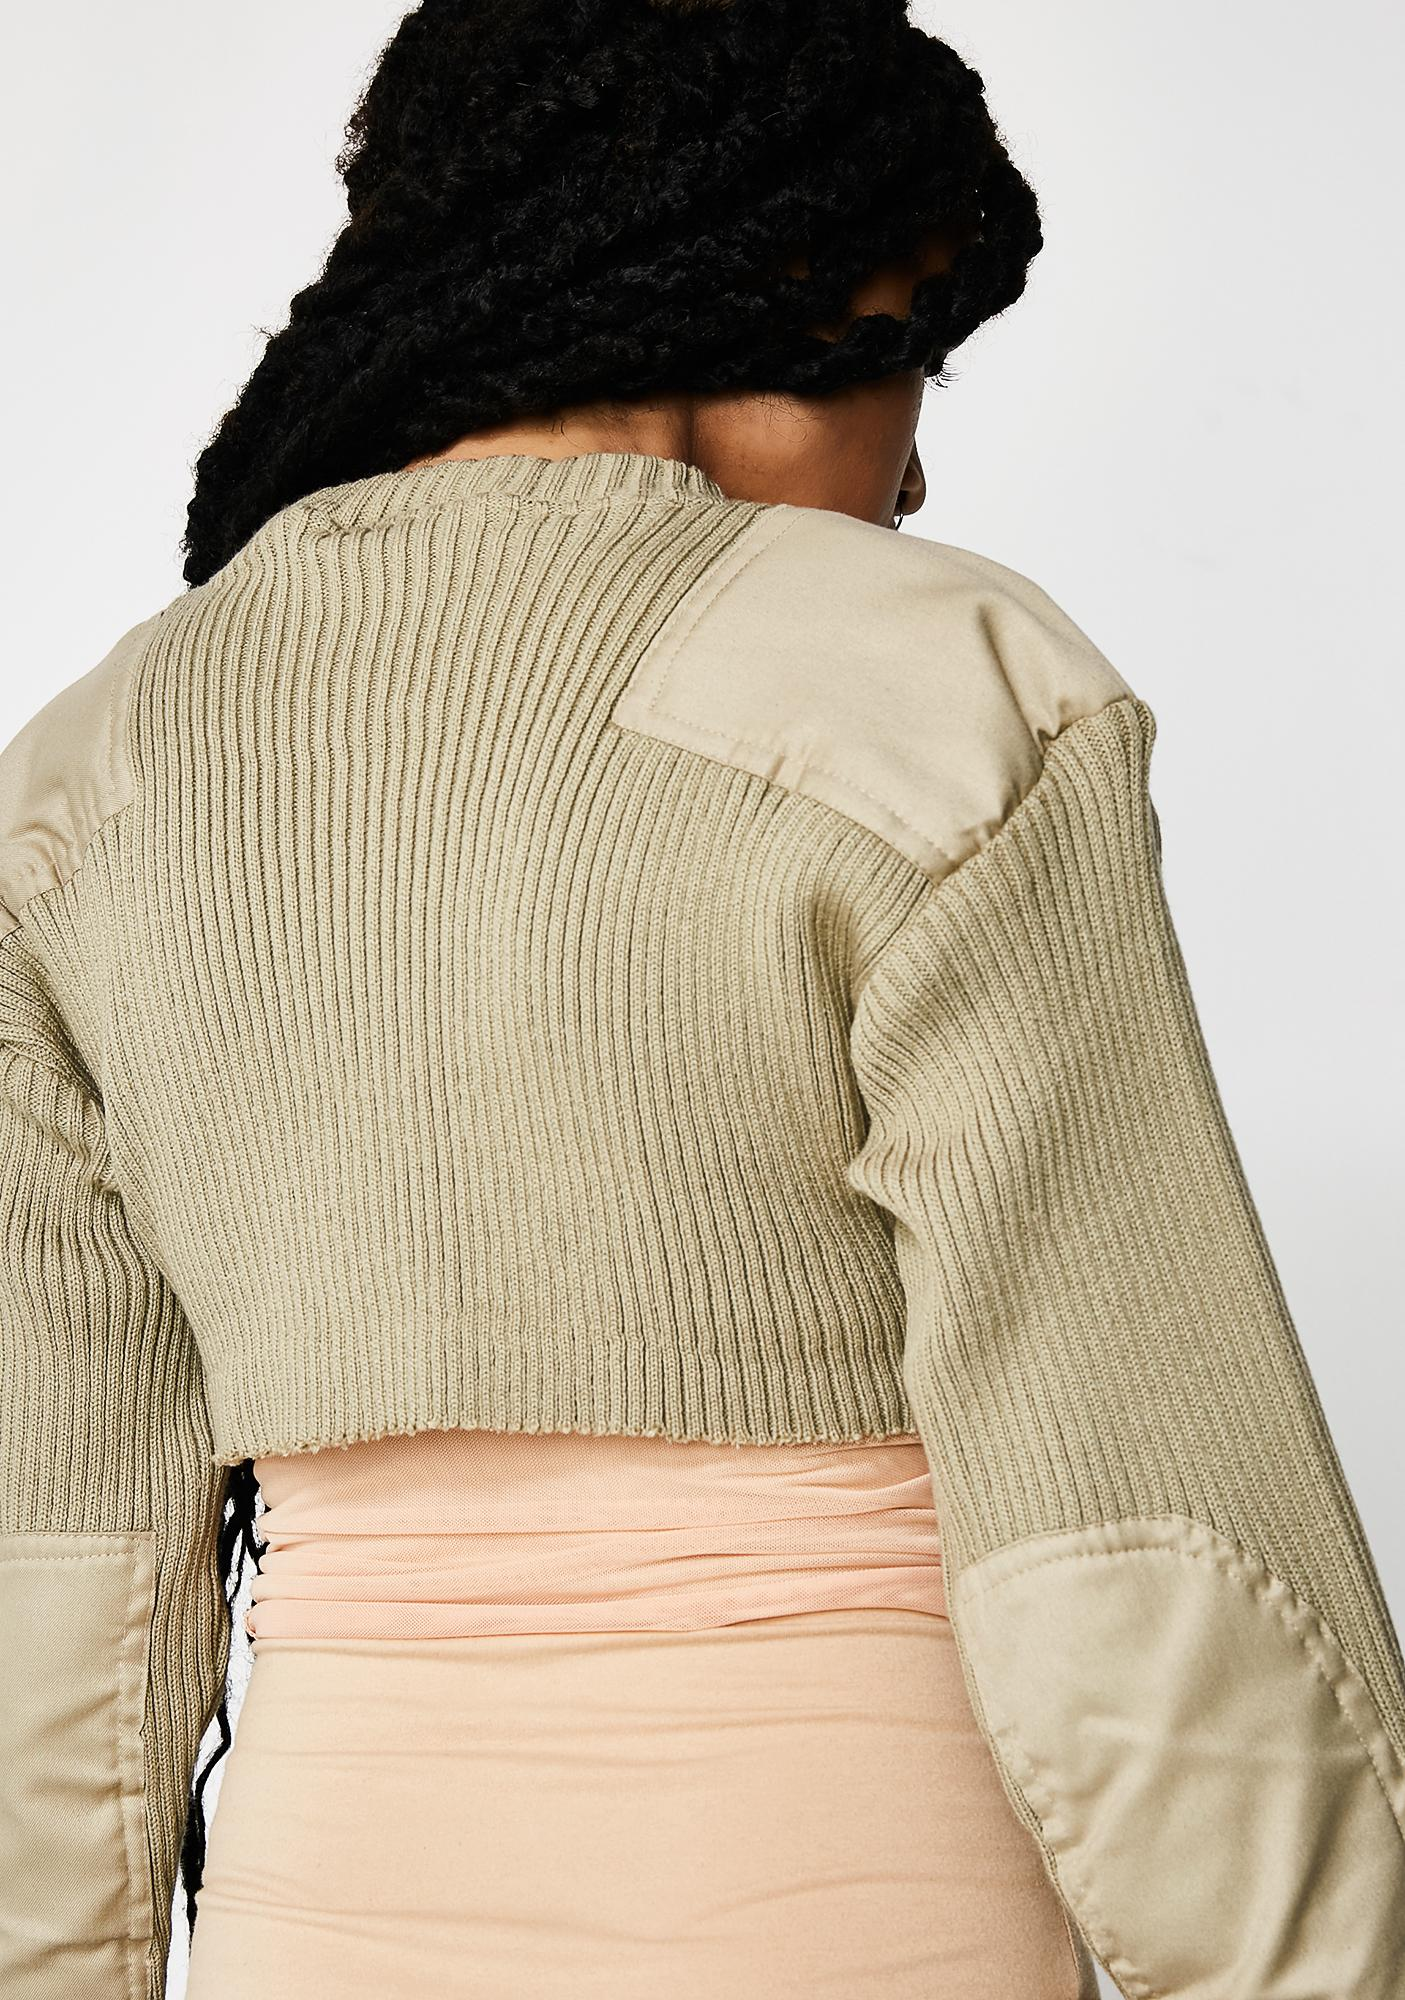 Plugged NYC Plugged NYC Knit Collection Crop